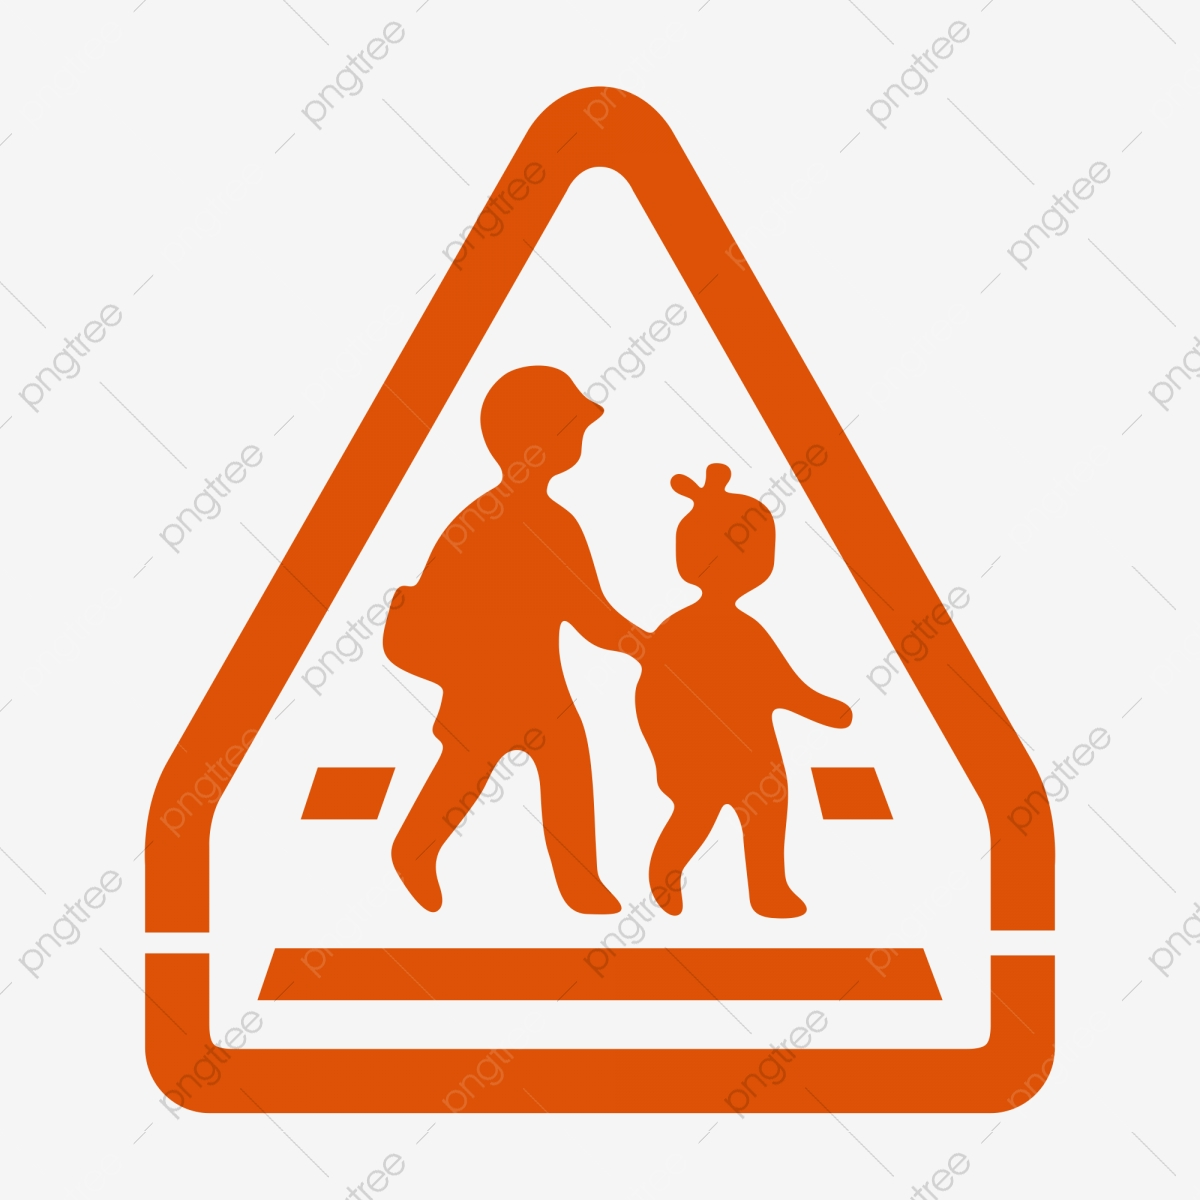 Orange Attention Child Attention Clipart Attention To Children Children Png Transparent Clipart Image And Psd File For Free Download